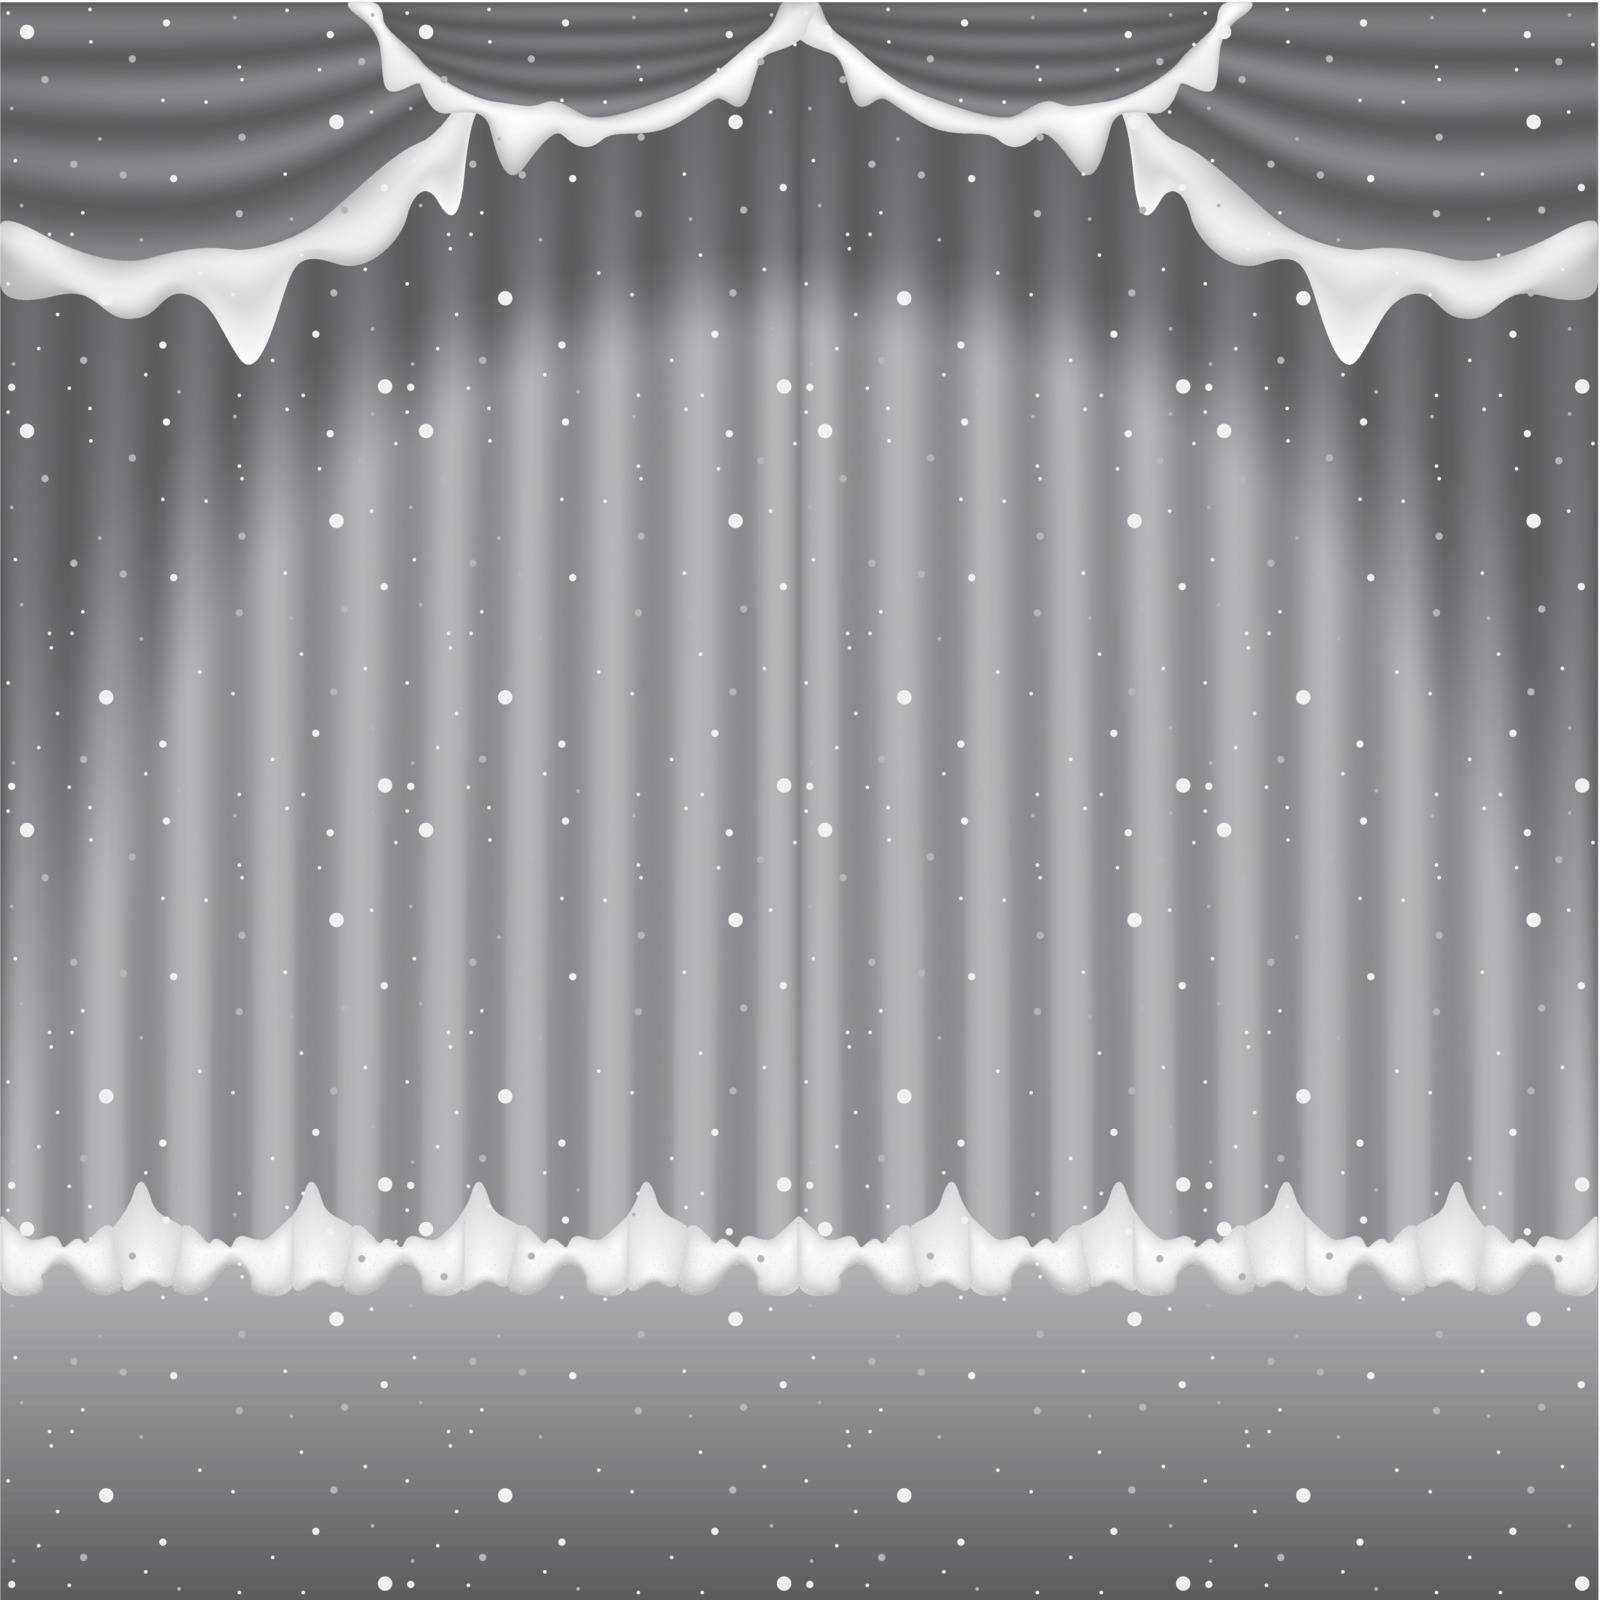 Frozen Winter Curtain - Colored Background Illustration, Vector